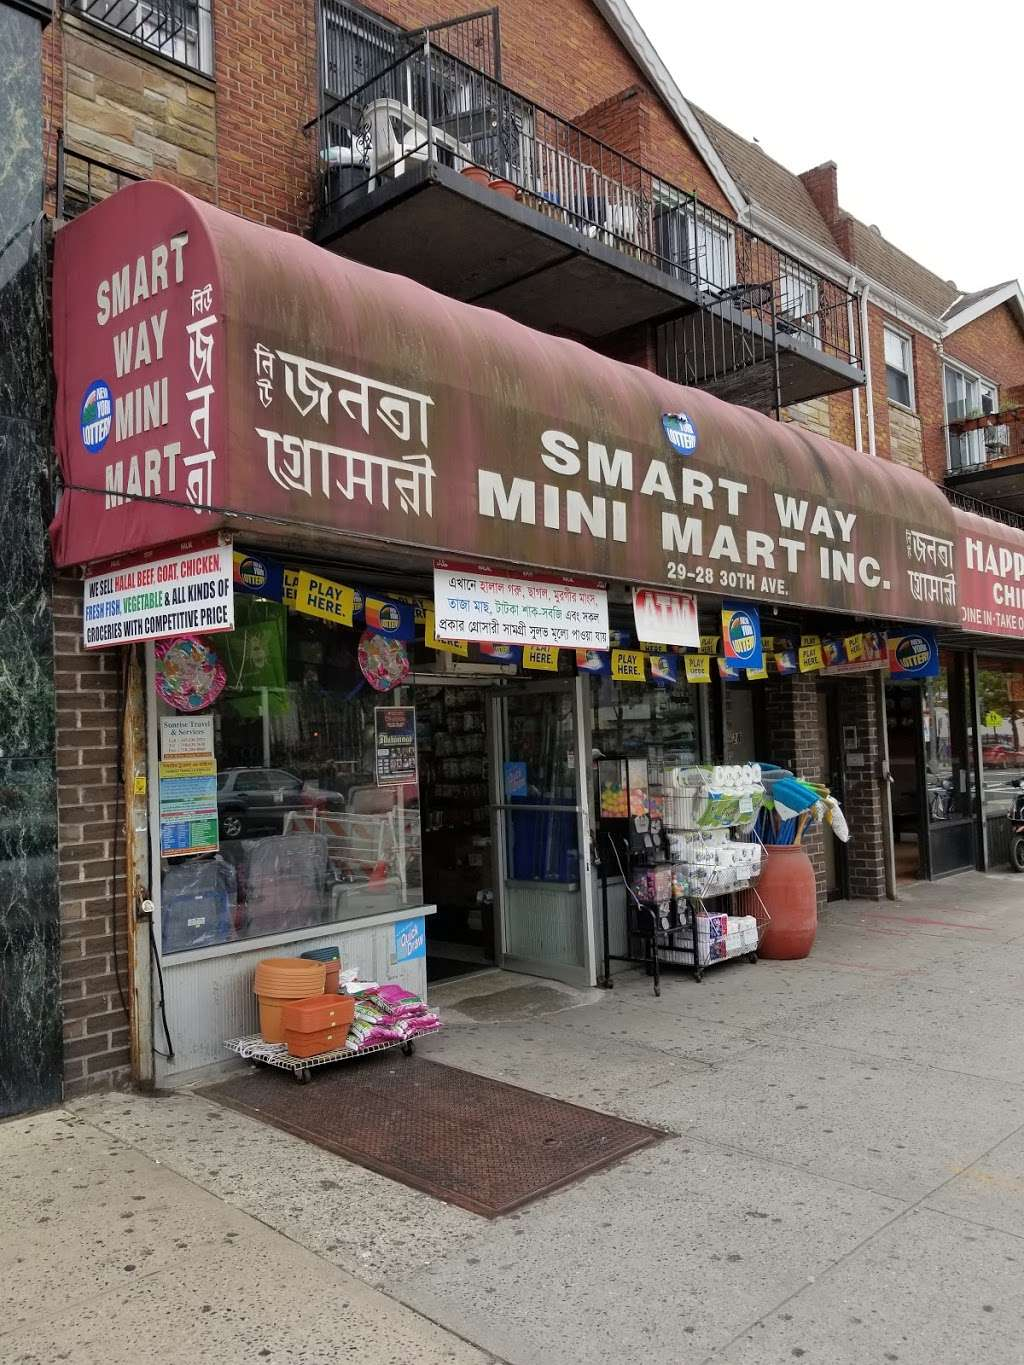 Smart Way Mini Mart Inc - convenience store  | Photo 1 of 2 | Address: 2928 30th Ave, Astoria, NY 11102, USA | Phone: (718) 274-1609